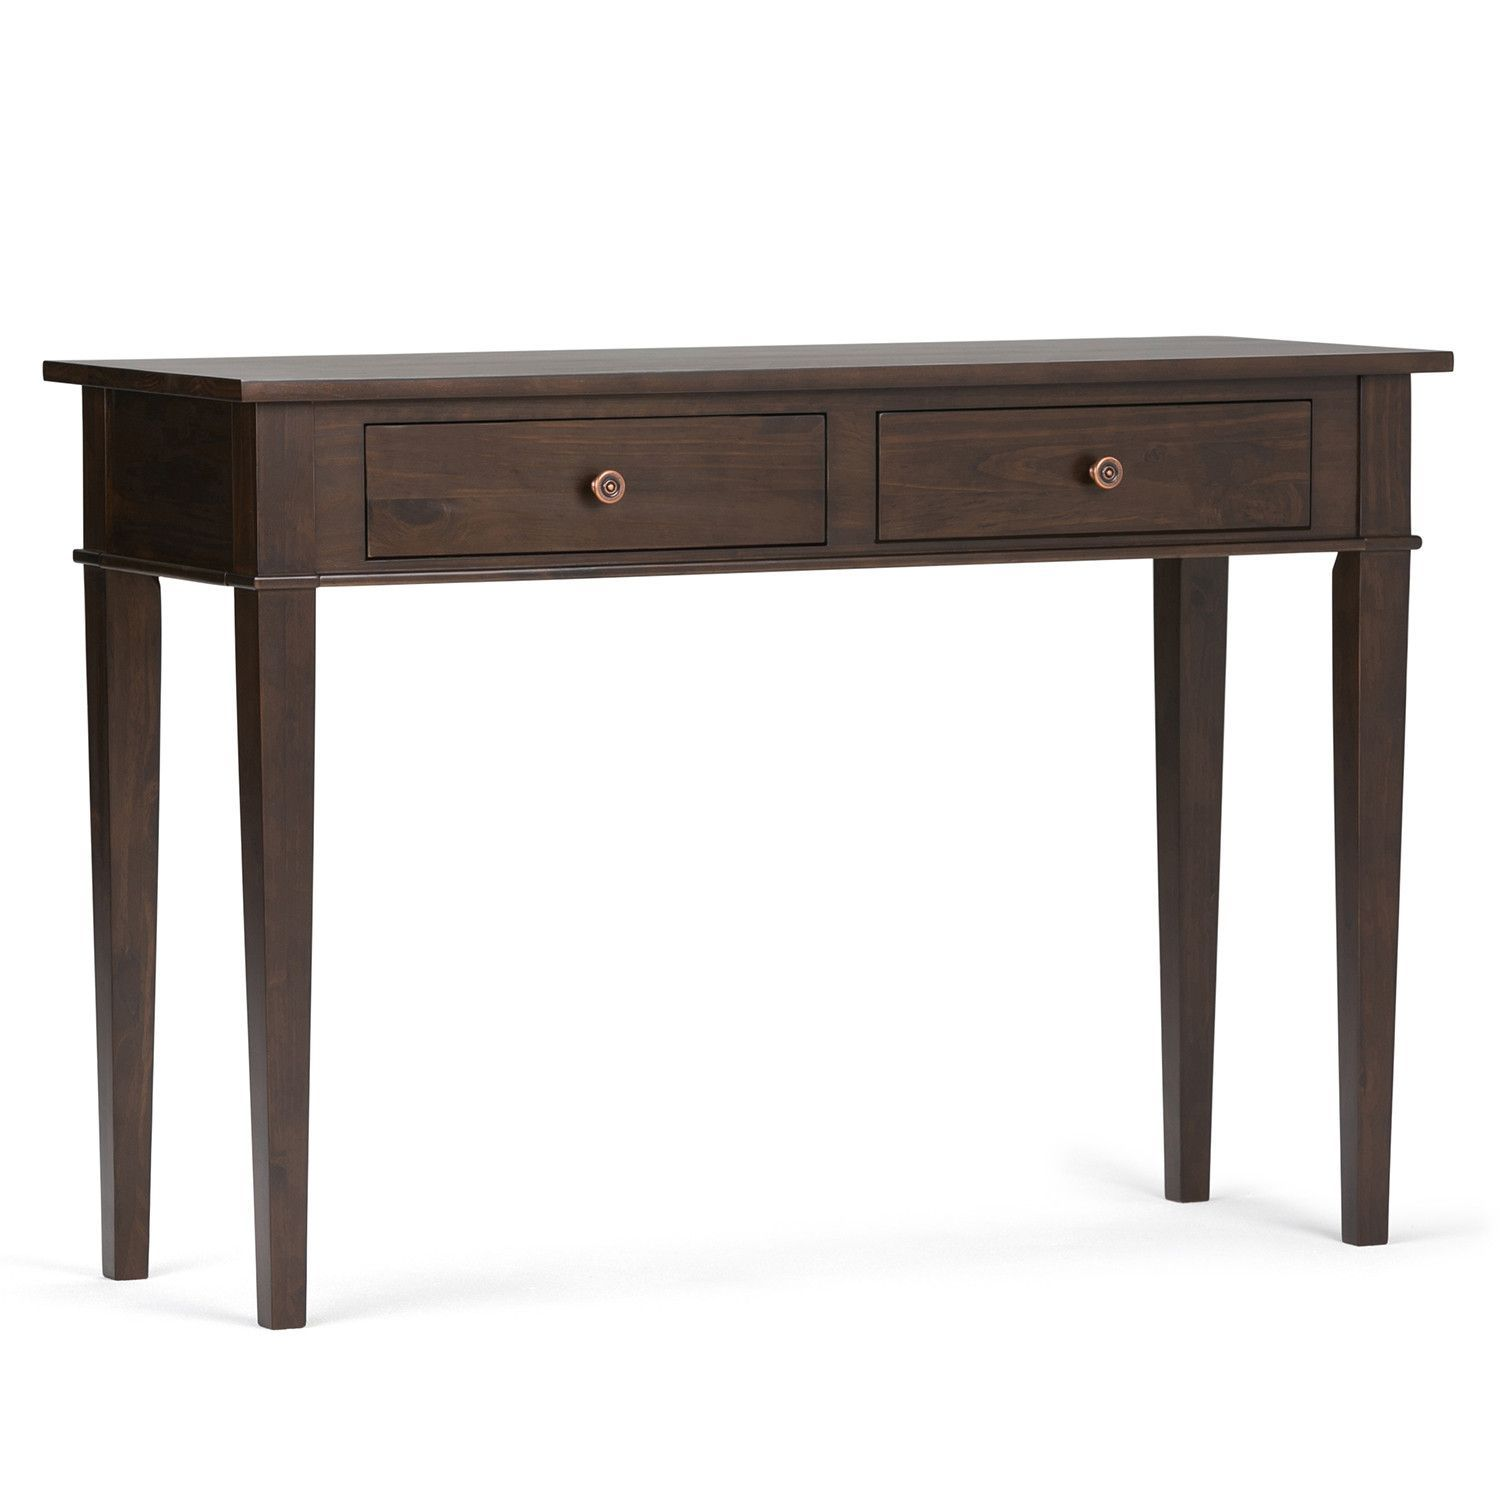 Delicieux Carlton 44 X 16 X 30 Inch Console Sofa Table In Tobacco Brown